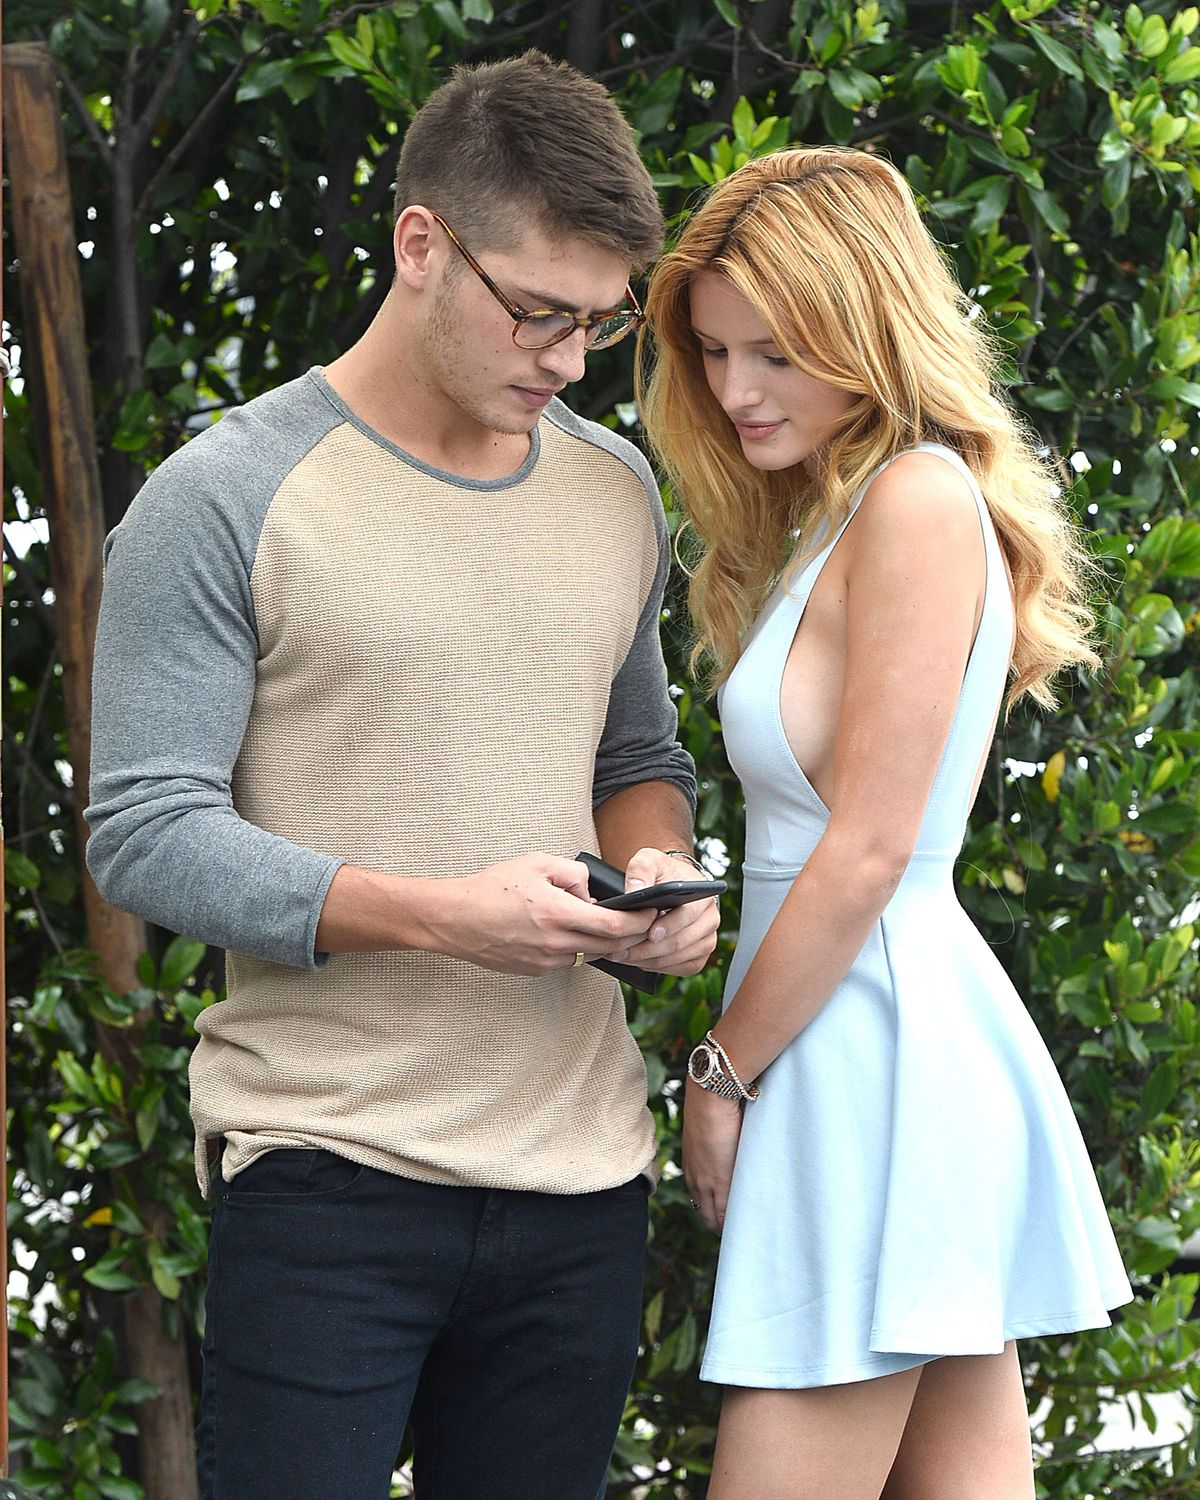 Bella Thorne Braless 25 TheFappening.nu